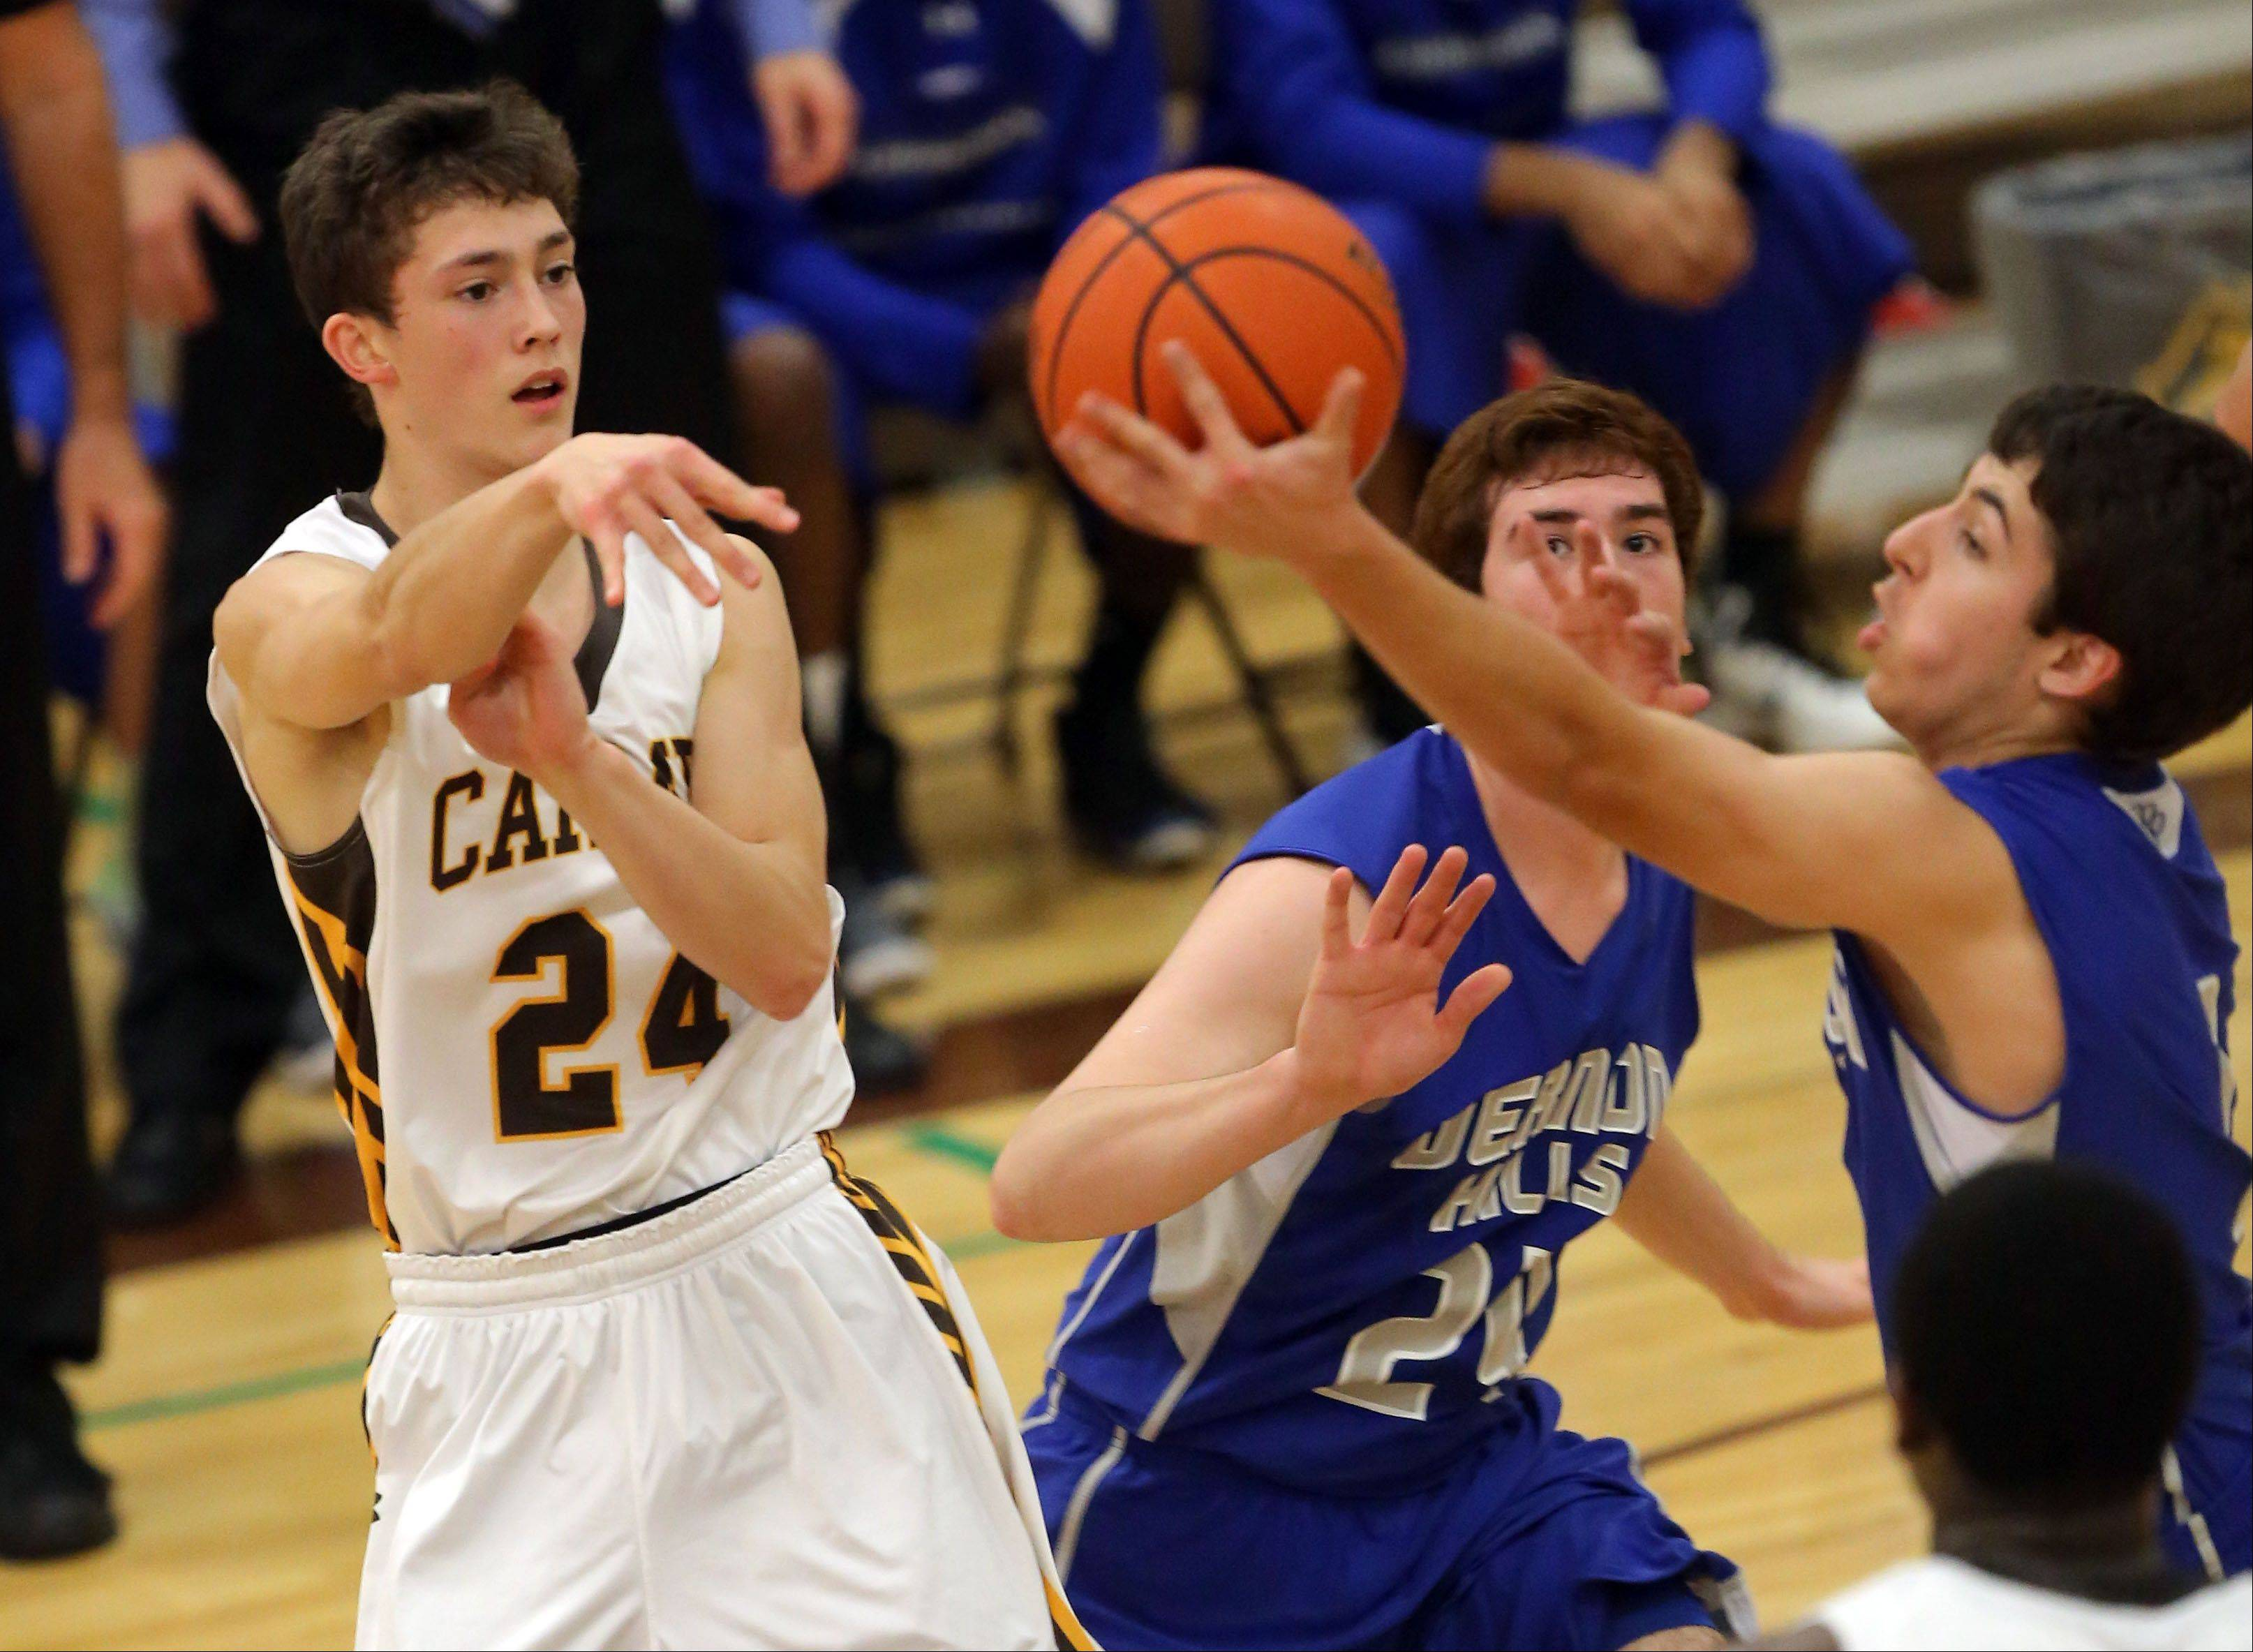 Carmel's Billy Kirby, left, tries to pass around Vernon Hills' Robby Nardini on Wednesday night at Carmel Catholic.